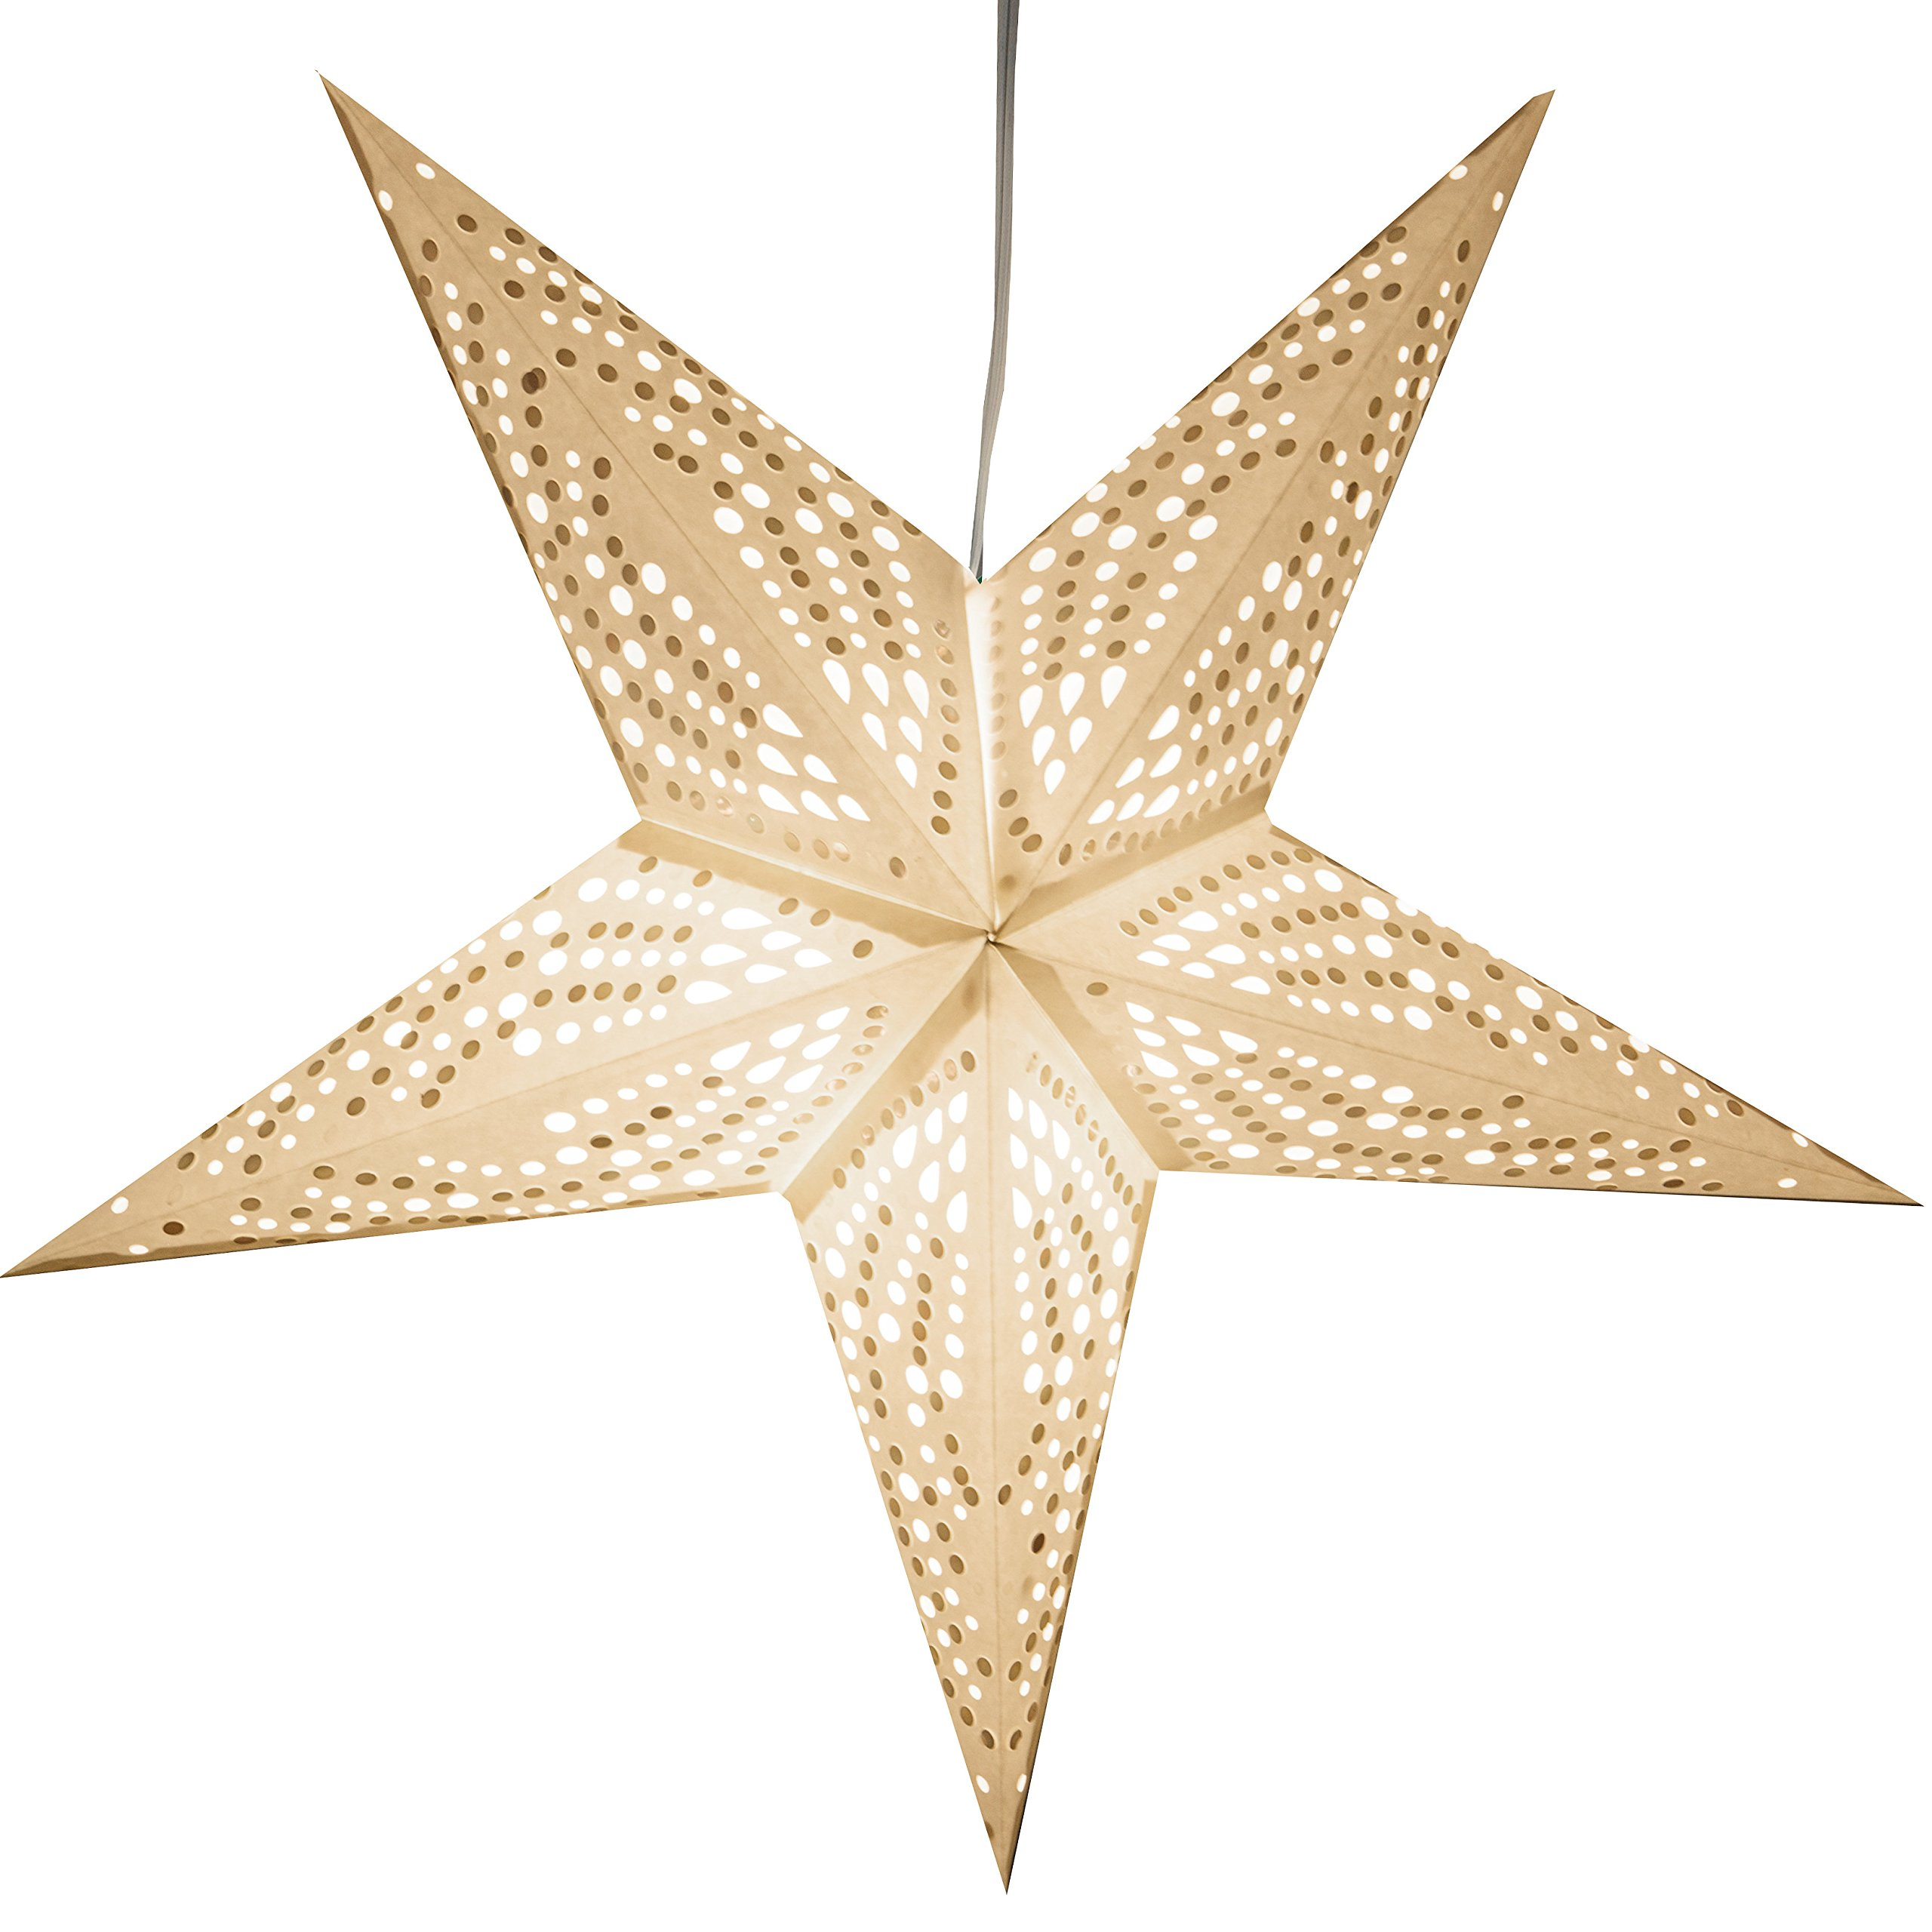 Frozen Paper Star Light Lamp Lantern with 12 Foot Power Cord Included